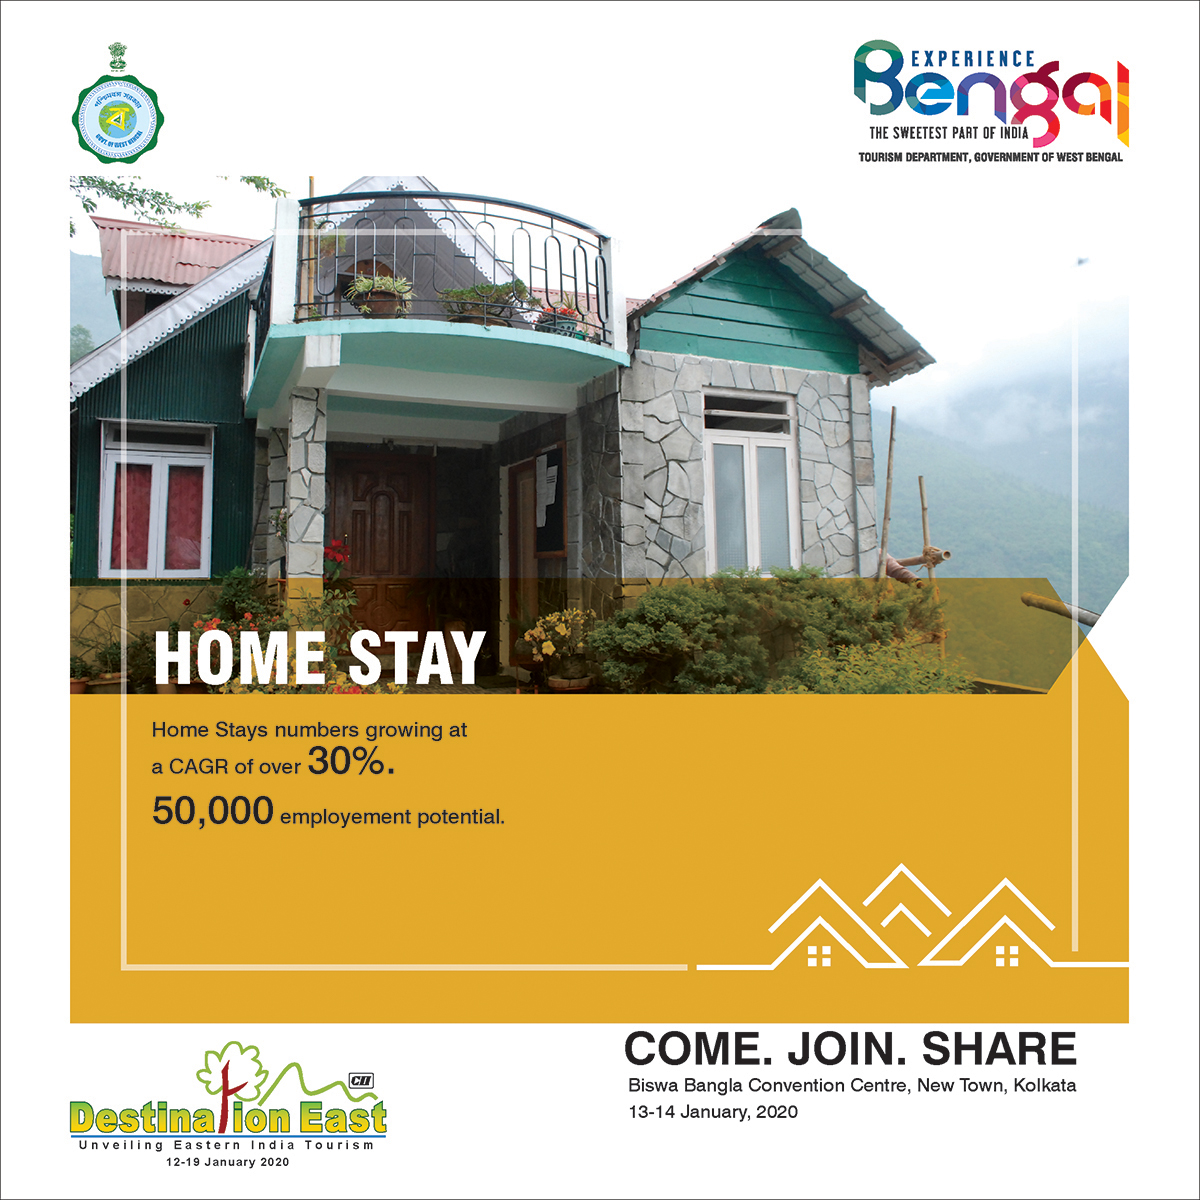 Feel the warmth of home stays in Bengal with #DestinationEast, jointly conducted by the Dept. of Tourism, Govt. of WB and @FollowCII.  Dates: 13th-14th Jan, 2020 Venue: BBCC, New Town  To experience Bengal, visit us at http://bit.ly/2QY6sYU   #BengalTourism #ExperienceBengalpic.twitter.com/zXTNWka8i3